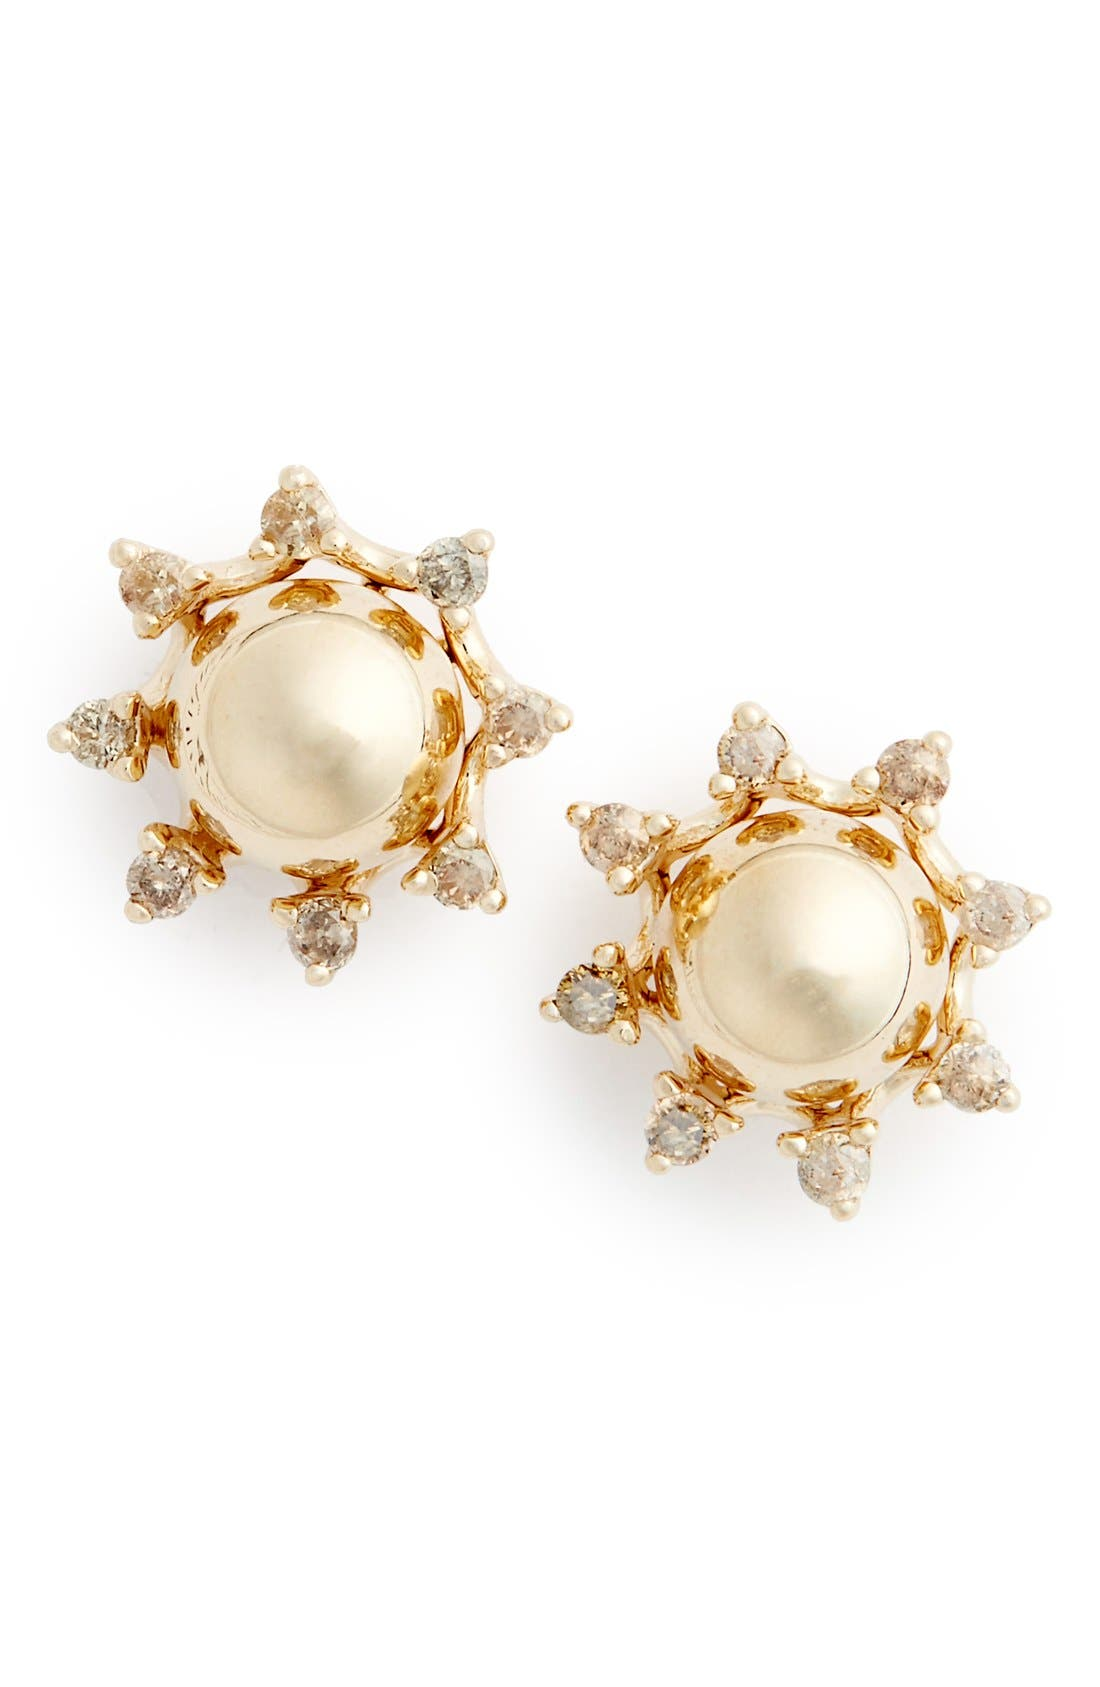 'Starlight' Champagne Diamond Stud Earrings,                             Main thumbnail 1, color,                             Yellow/ Gold/ Champagne